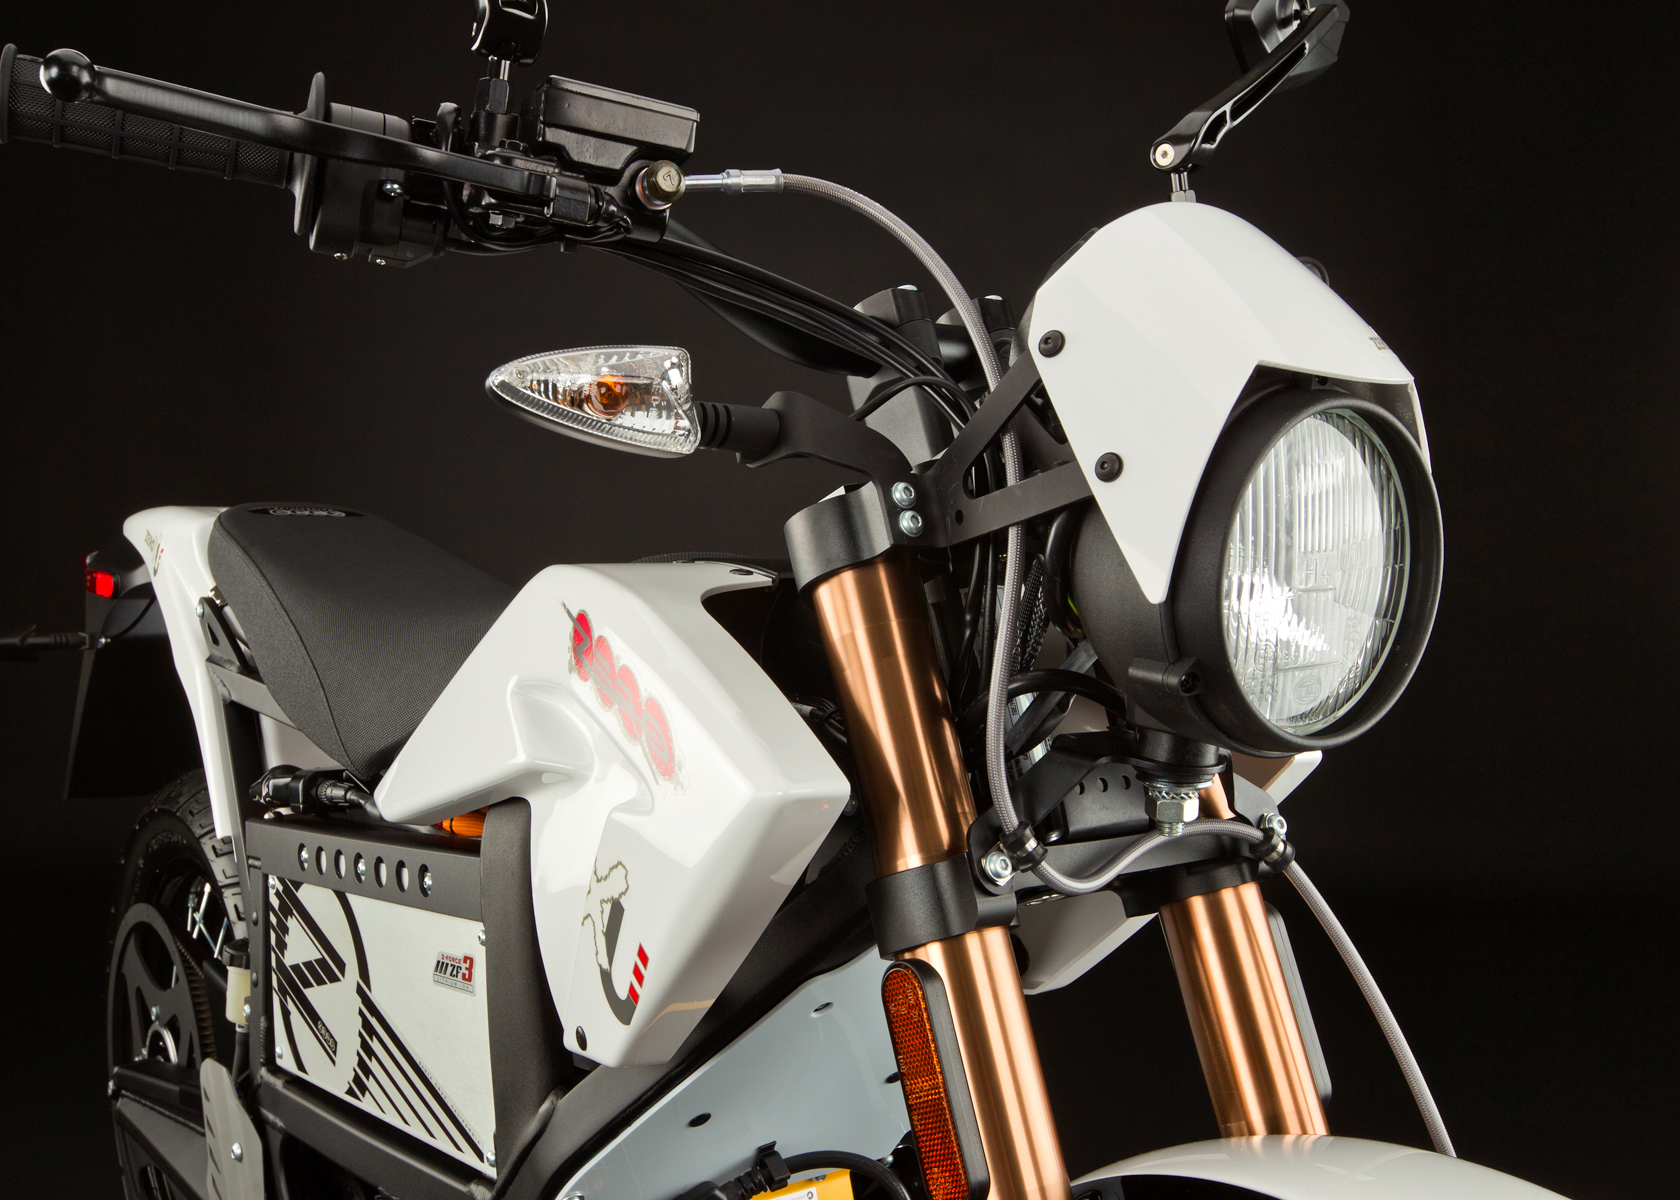 2012 Zero XU Electric Motorcycle: Headlight